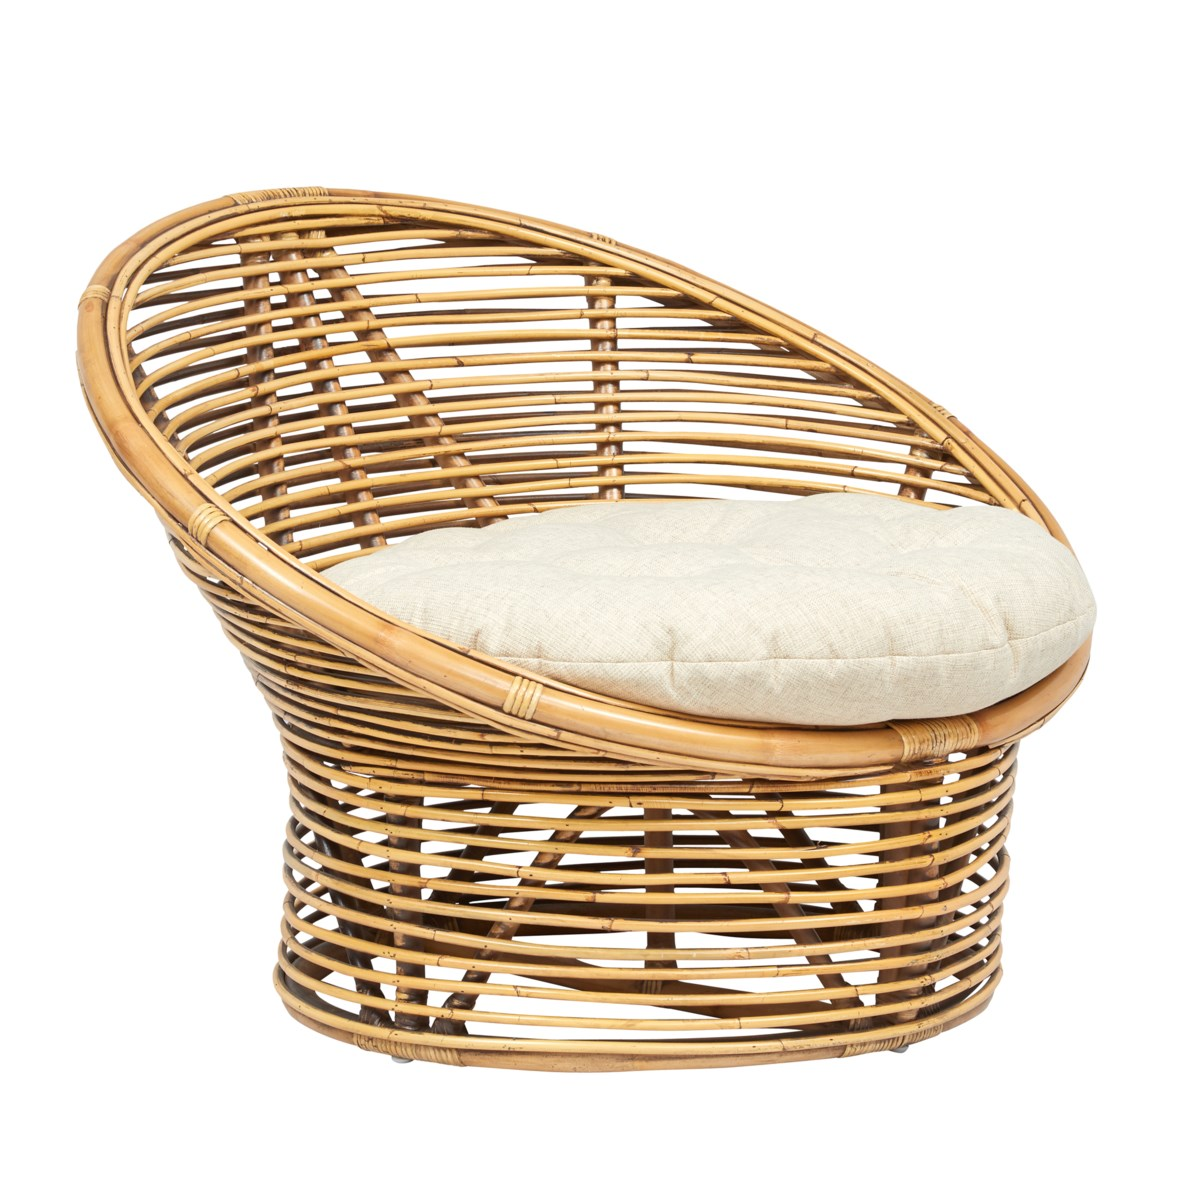 Boho Egg Chair Rattan Frame Color - Honey Brown Cushion Color - CreamCLOSE-OUT - 50% OFF!SOLD A